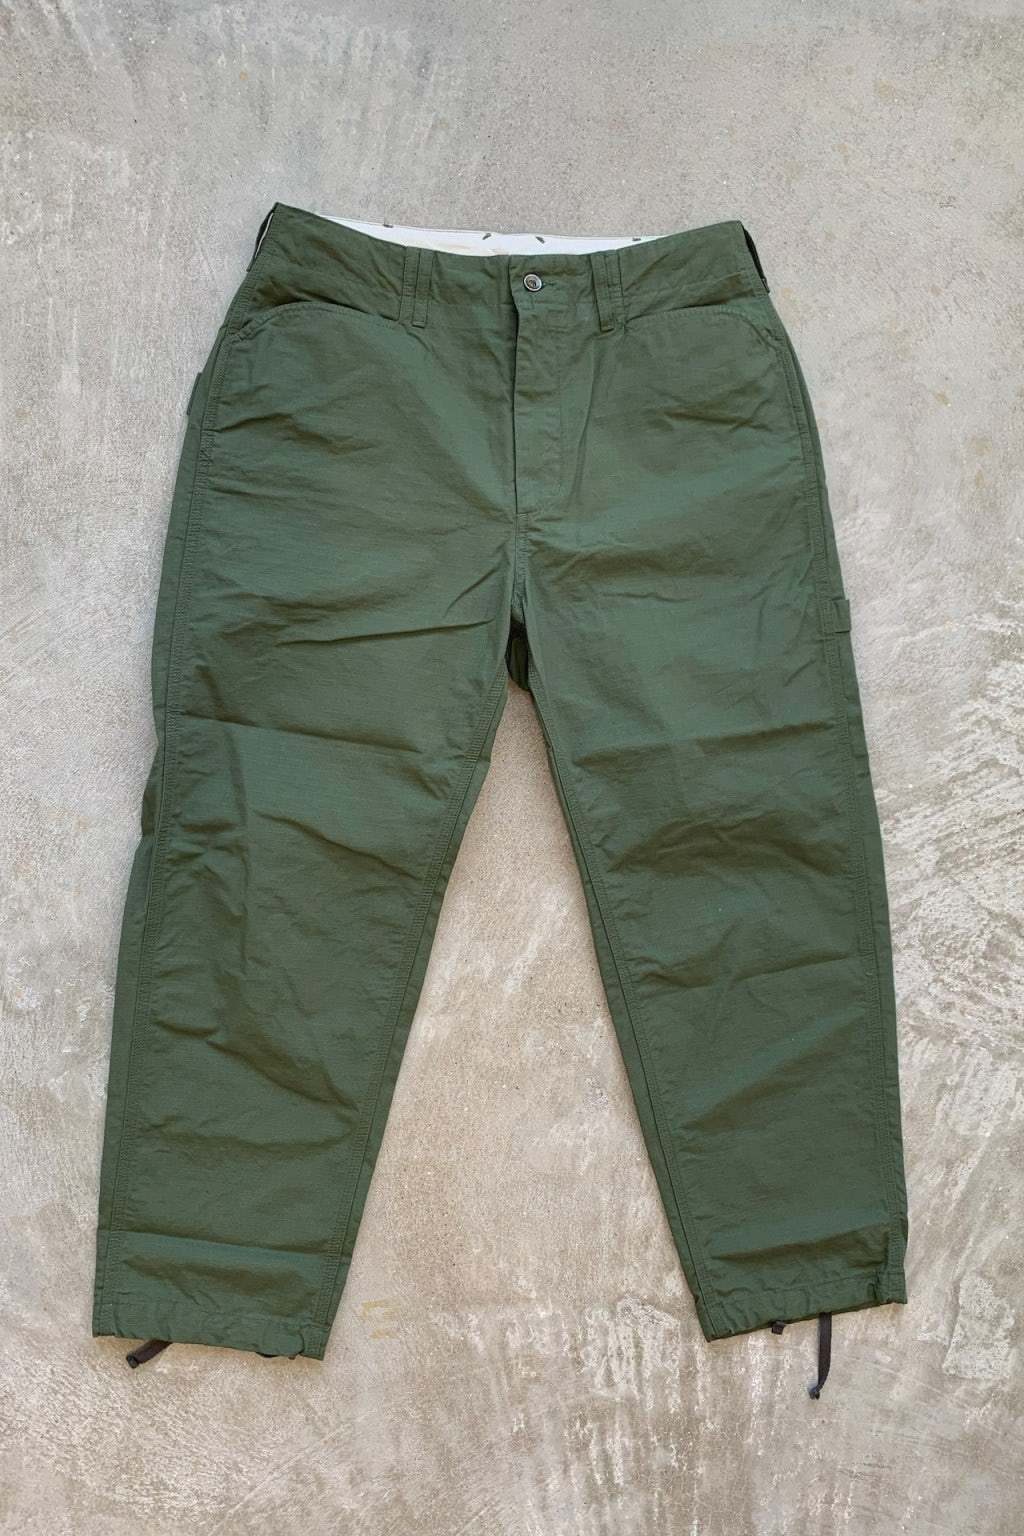 Engineered Garments Painter Pant Olive Cotton Ripstop